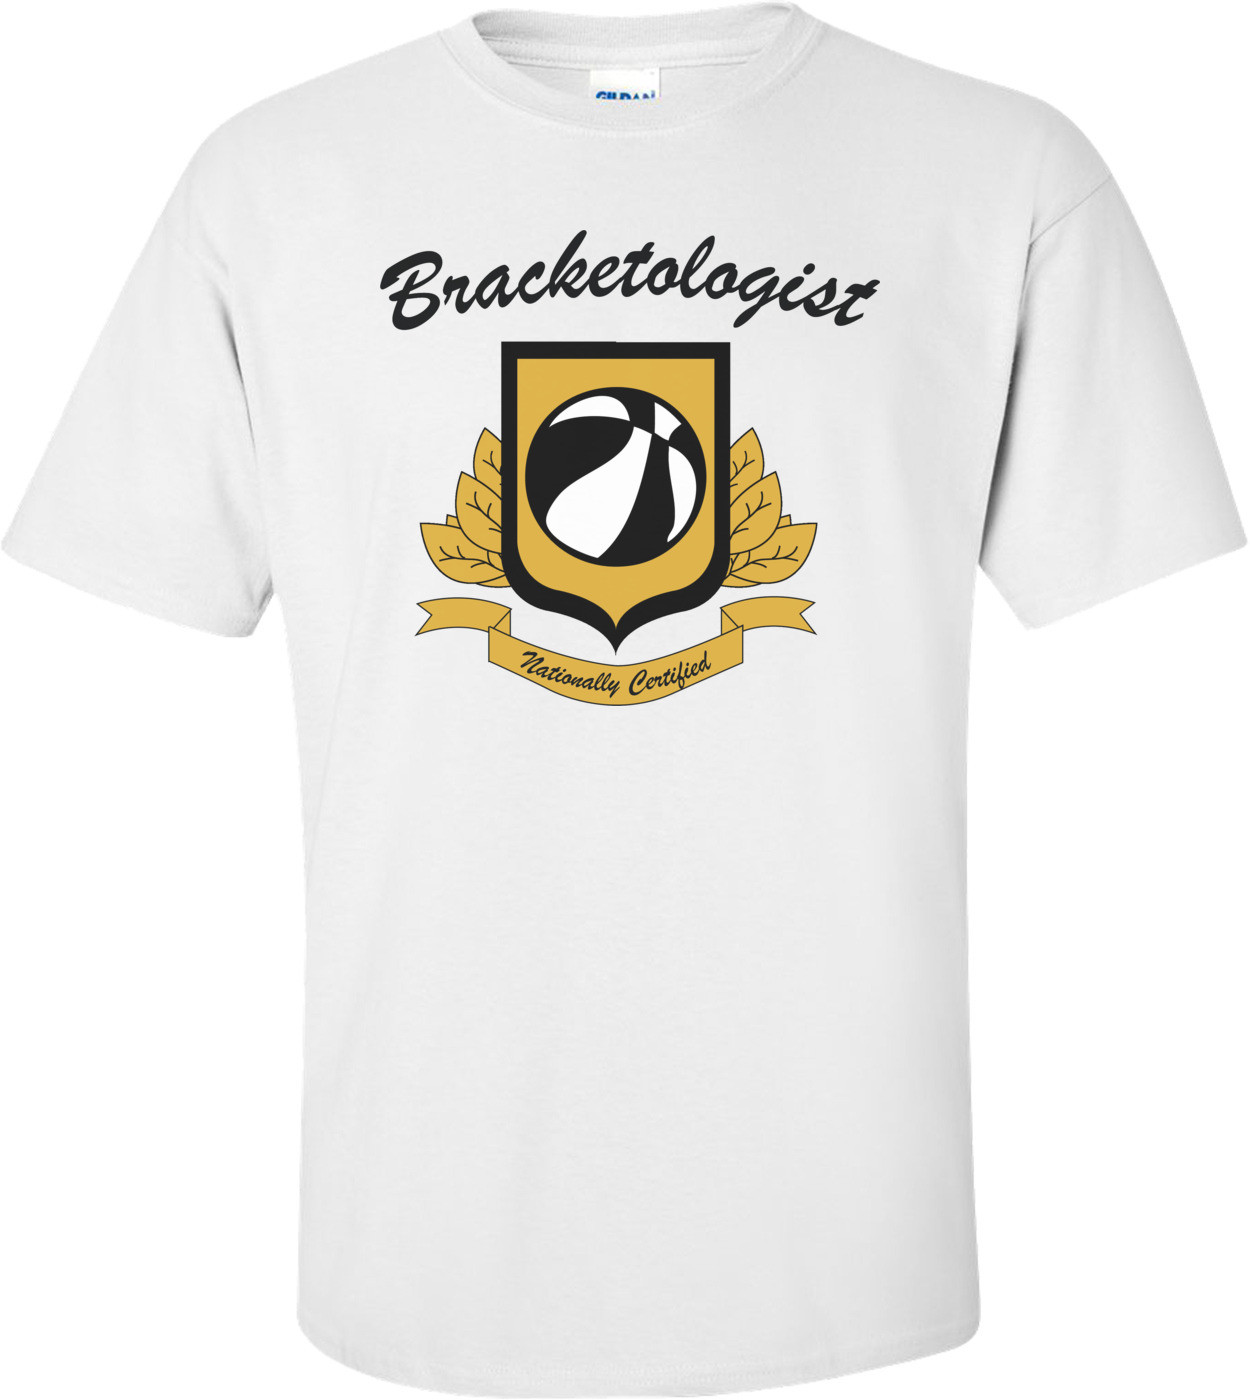 Bracketologist March Madness T-shirt